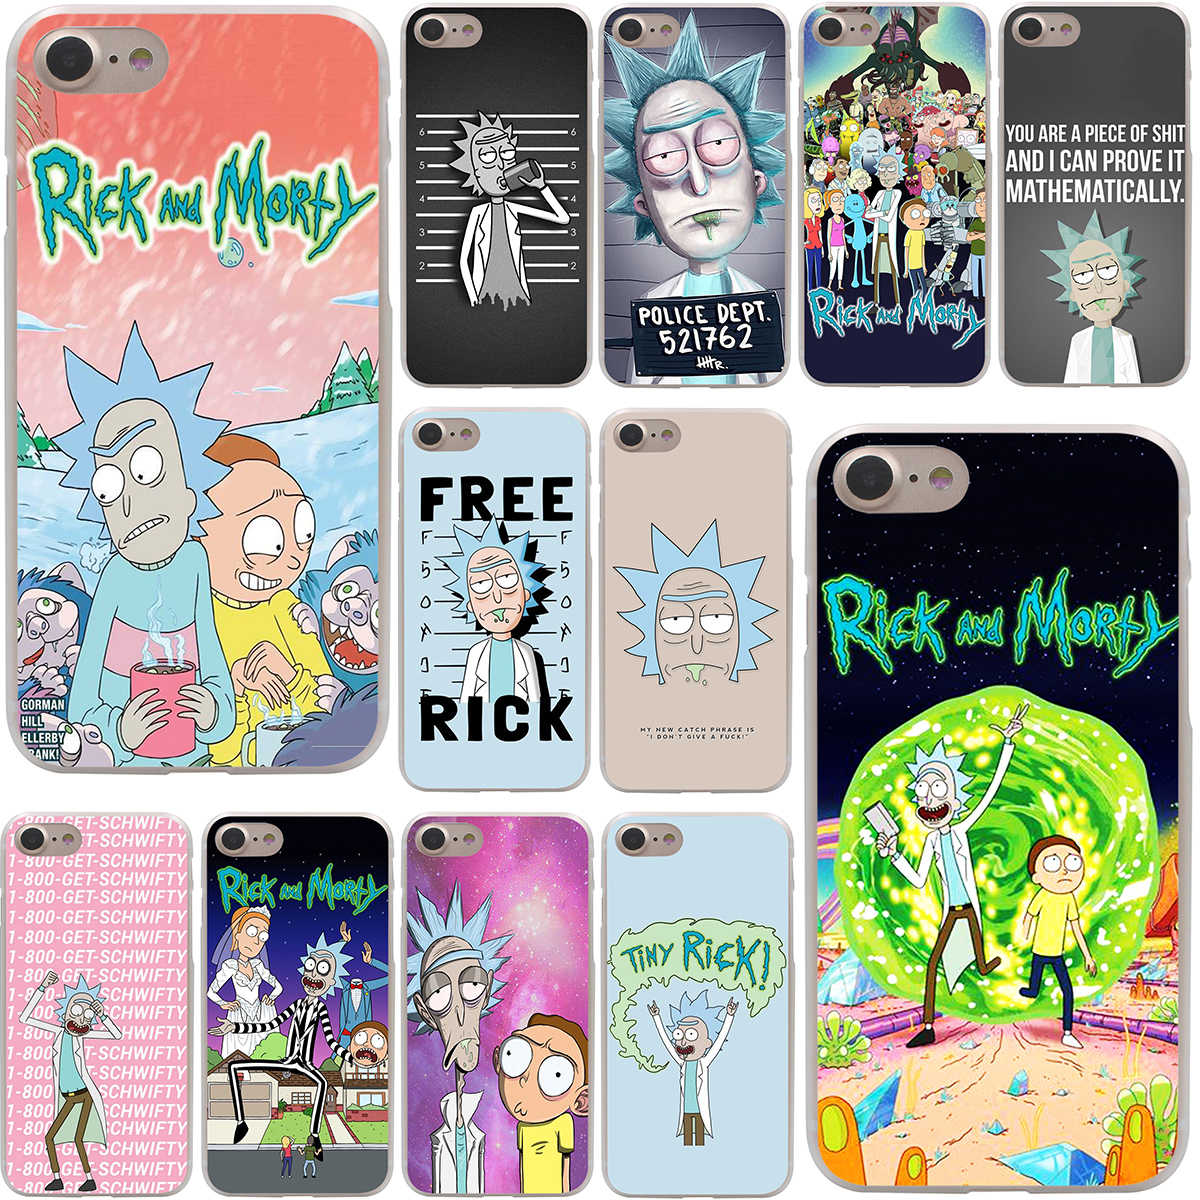 Rick and Morty Season Hard Case Transparent for iPhone 7 7 Plus 6 6s Plus 5 5S SE 5C 4 4S